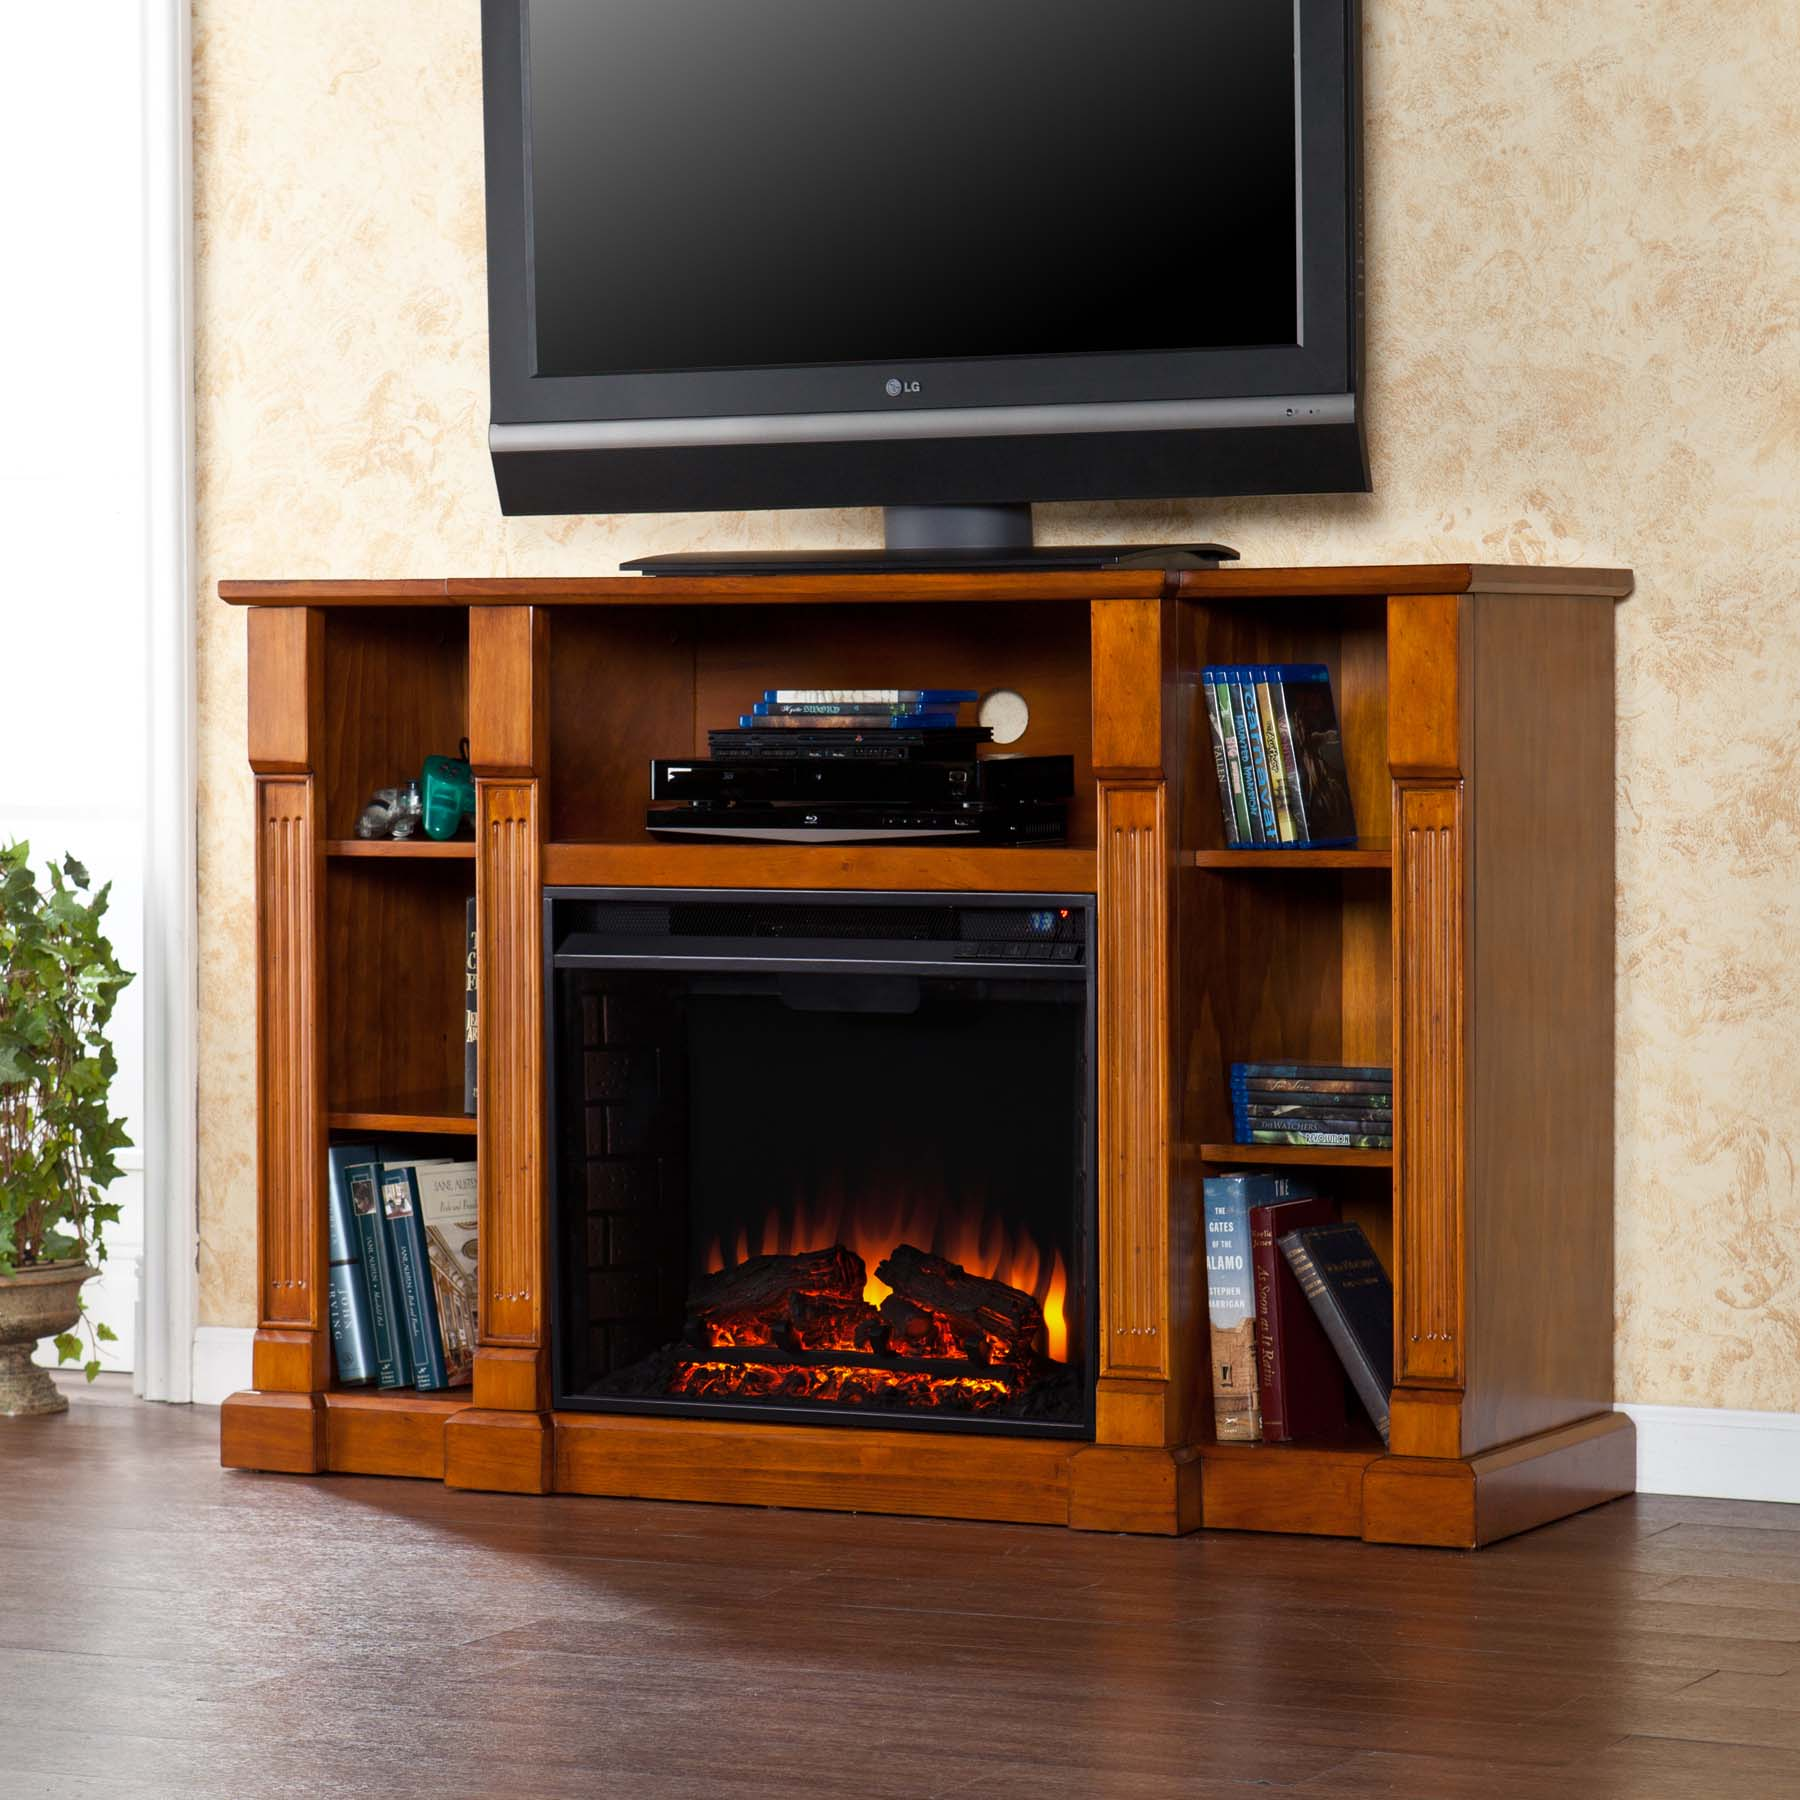 the 10 most asked questions about electric fireplaces